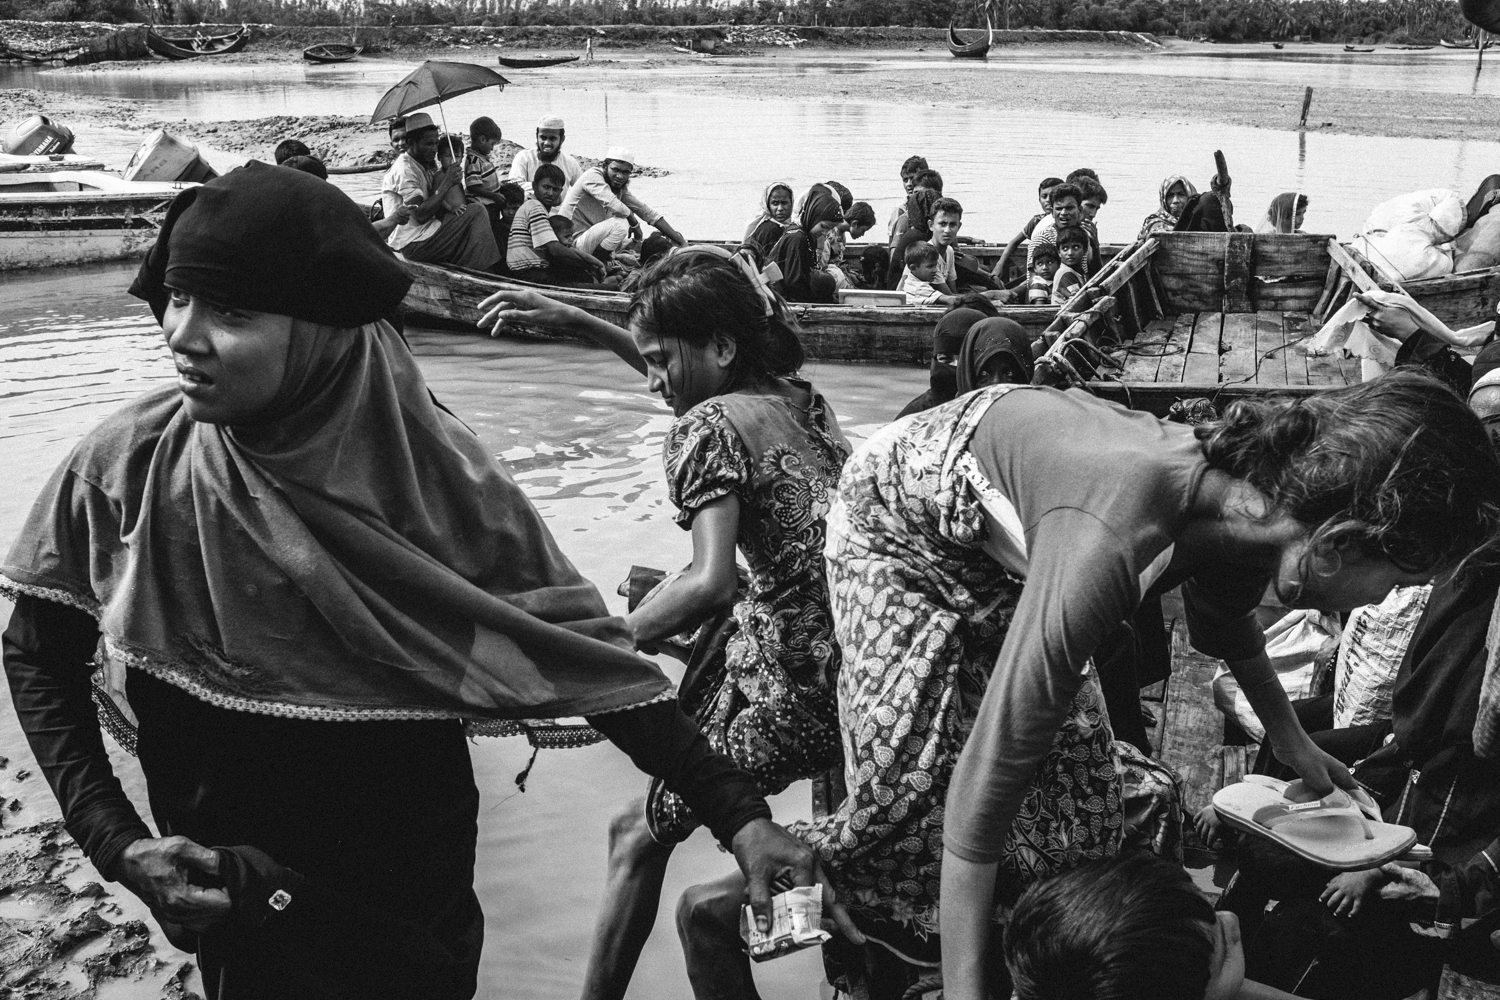 Newly arrived Rohingya refugees board boats at Shah Porir Dwip to be ferried to Bangladesh's mainland.